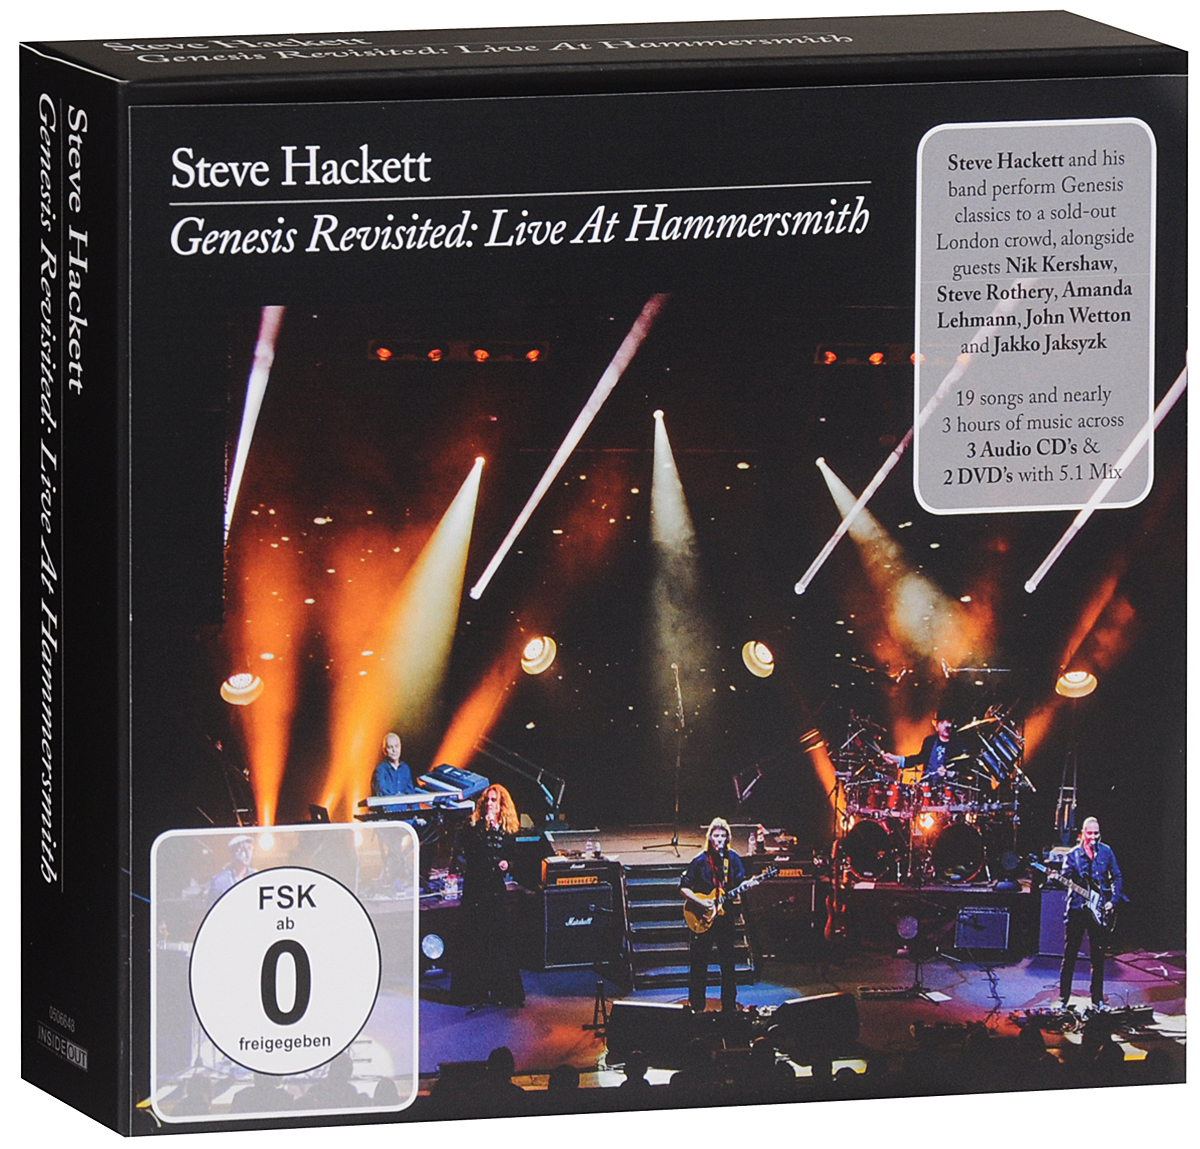 Стив Хэкетт Steve Hackett. Genesis Revisited. Live At Hammersmith (3 CD + 2 DVD) джек восьмеркин американец 2 dvd